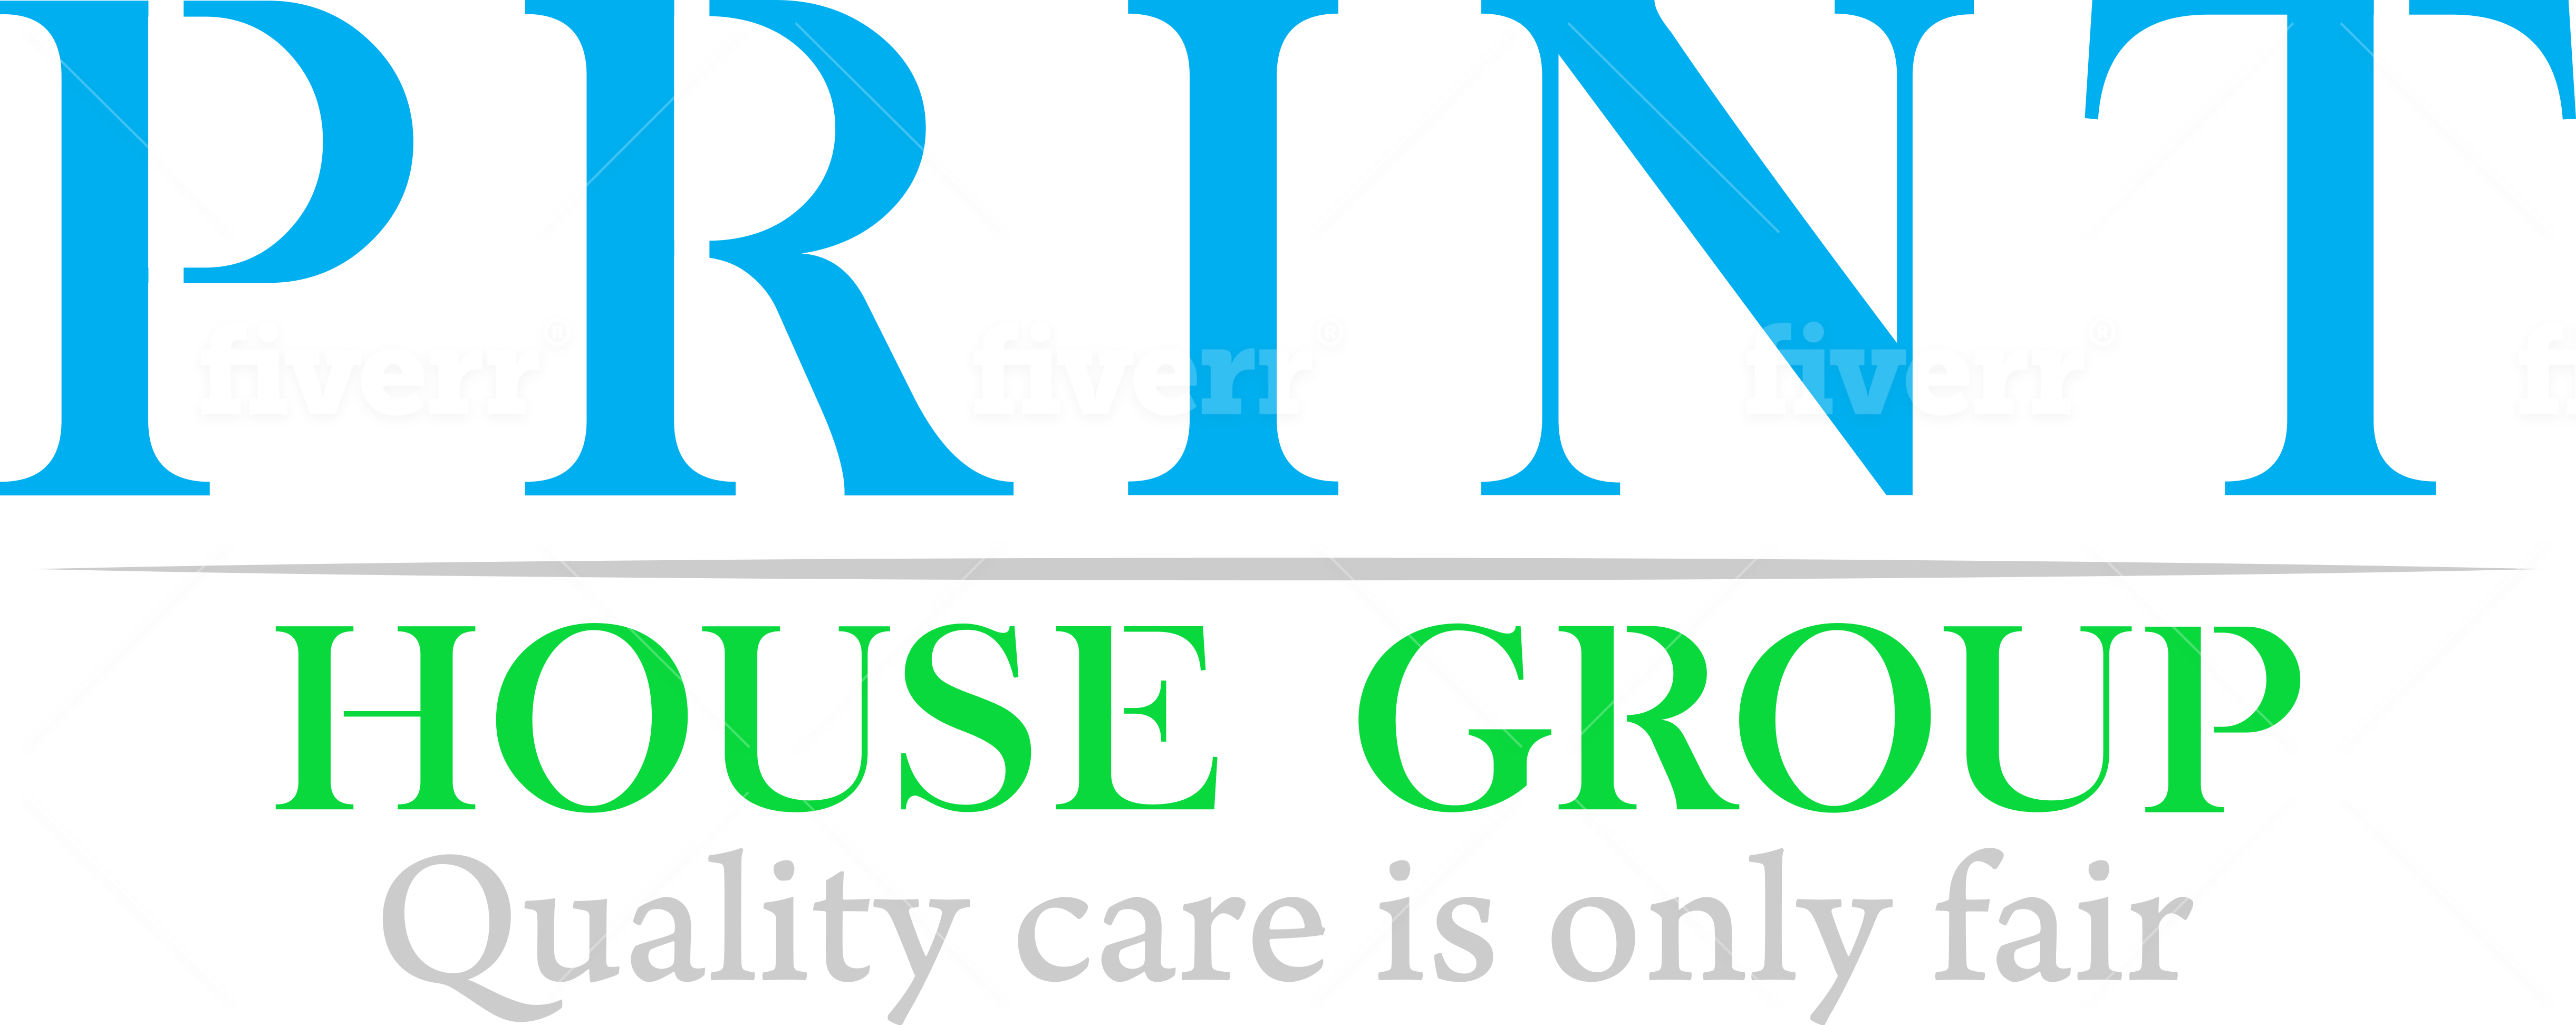 Print House Group Logo